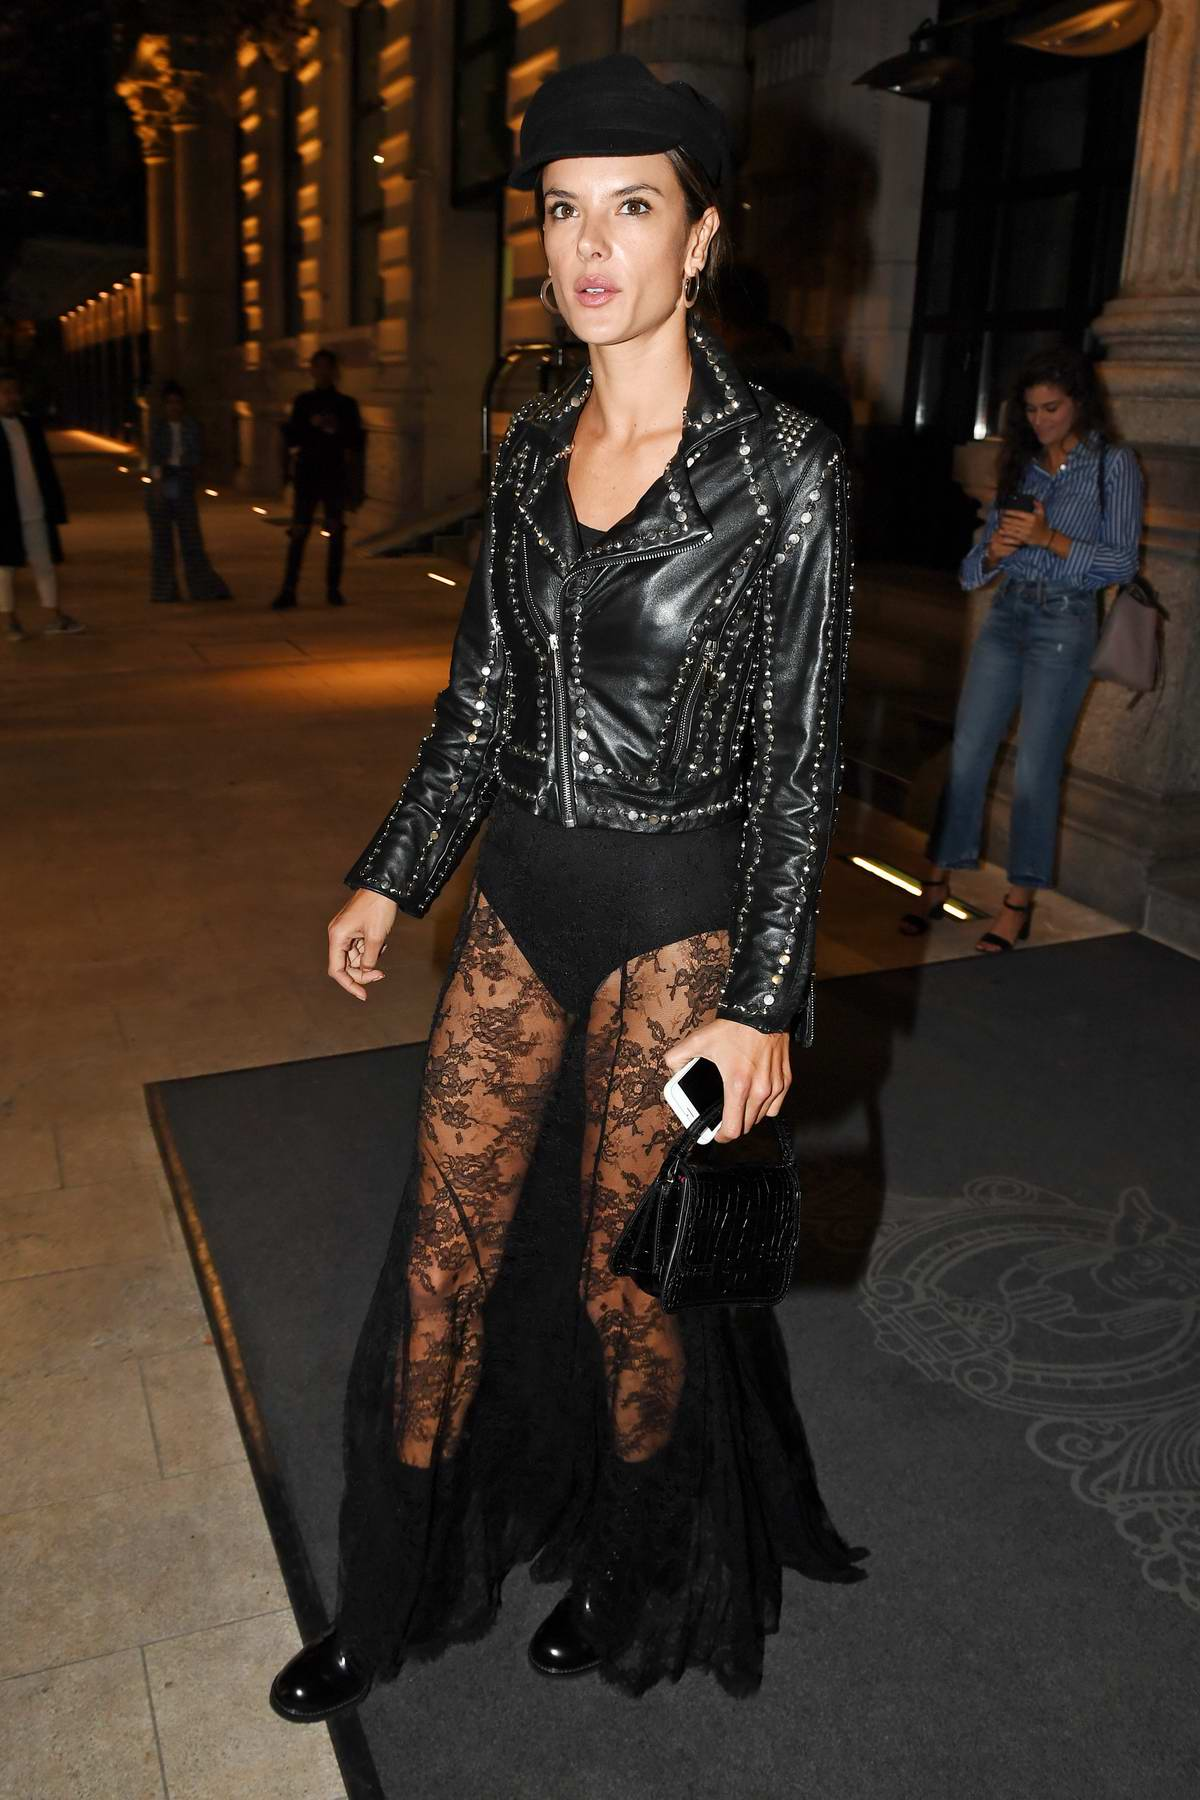 52147956_alessandra-ambrosio-in-all-black-out-and-about-in-milan-italy-190917_3.jpg